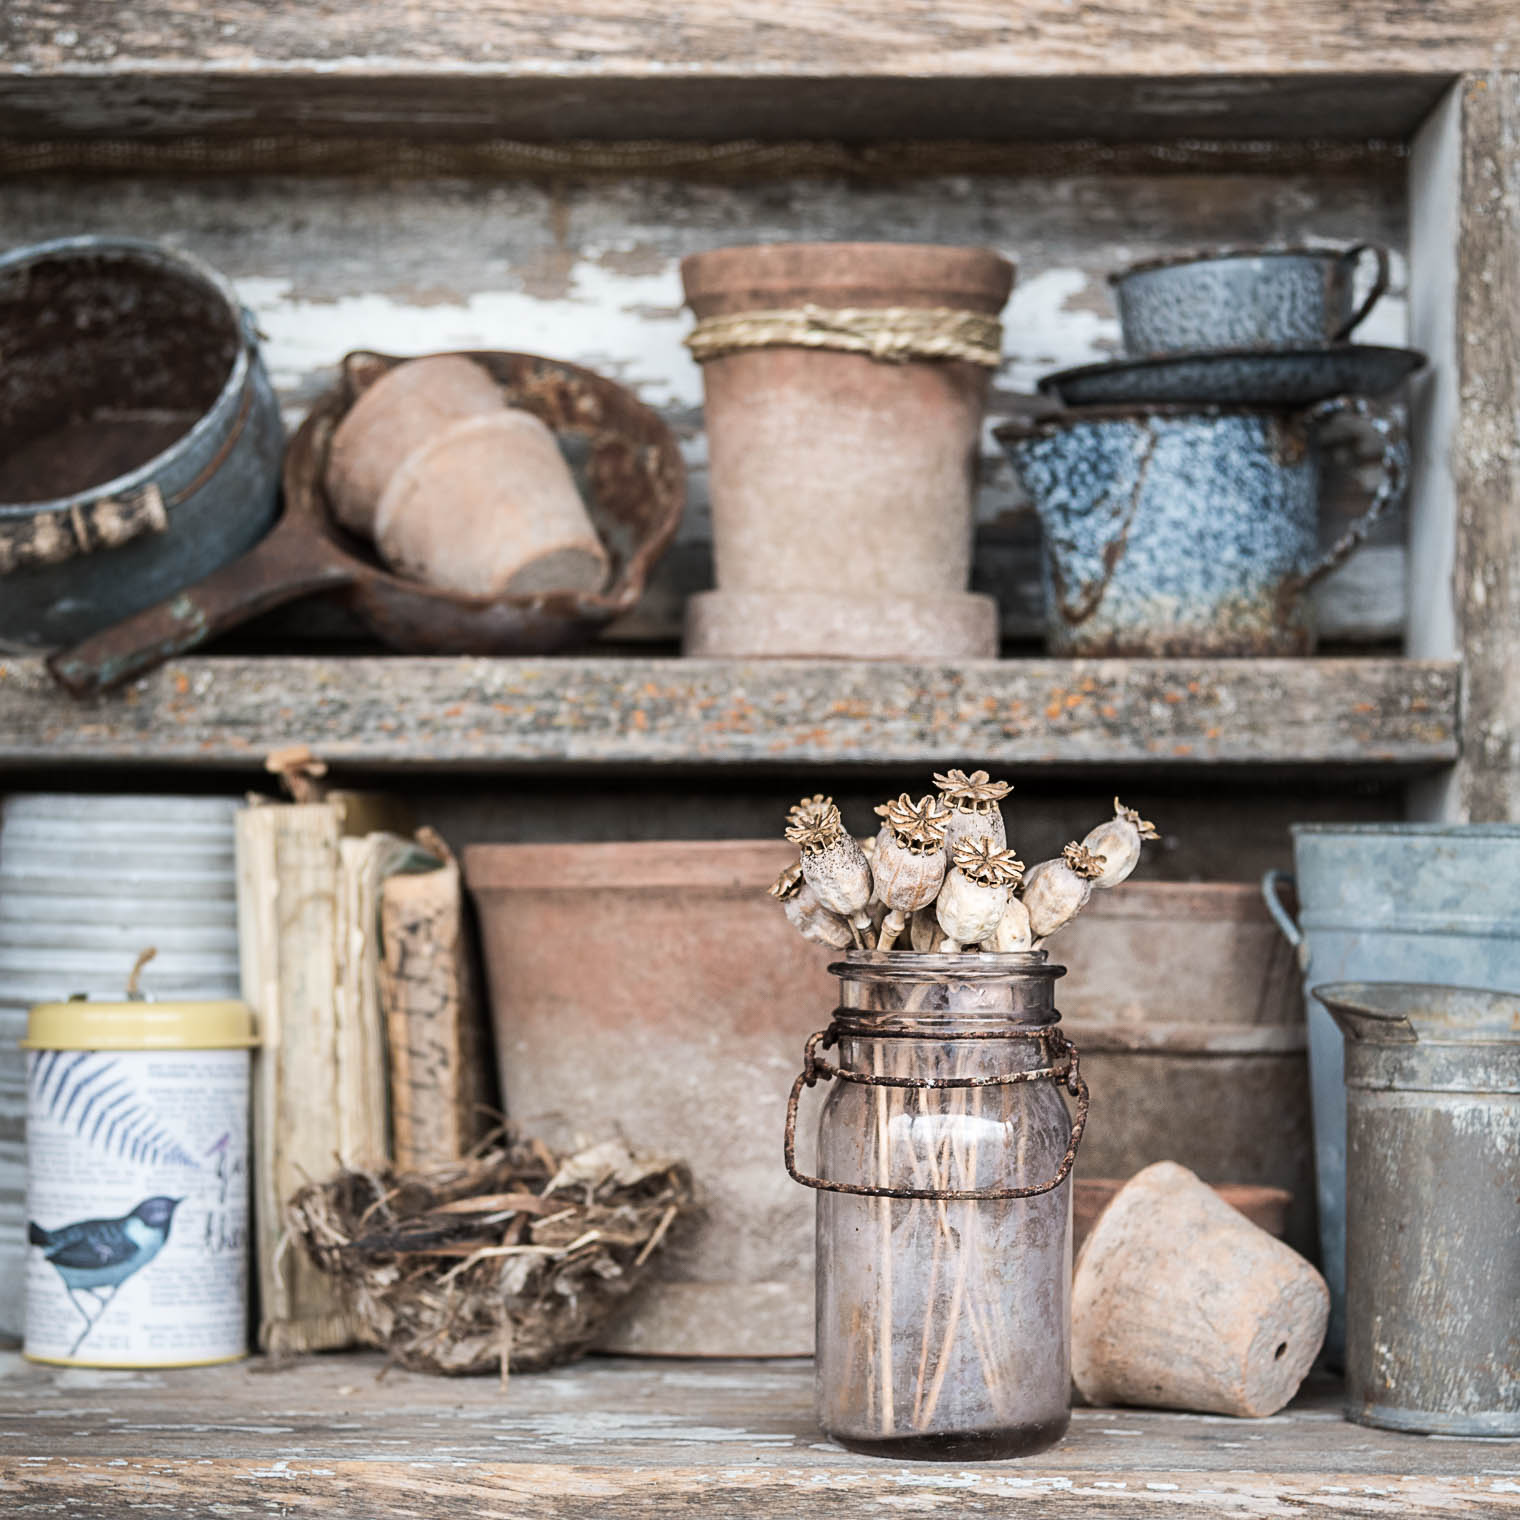 Potting Bench, Barb Brookbank, Keeping With the Times